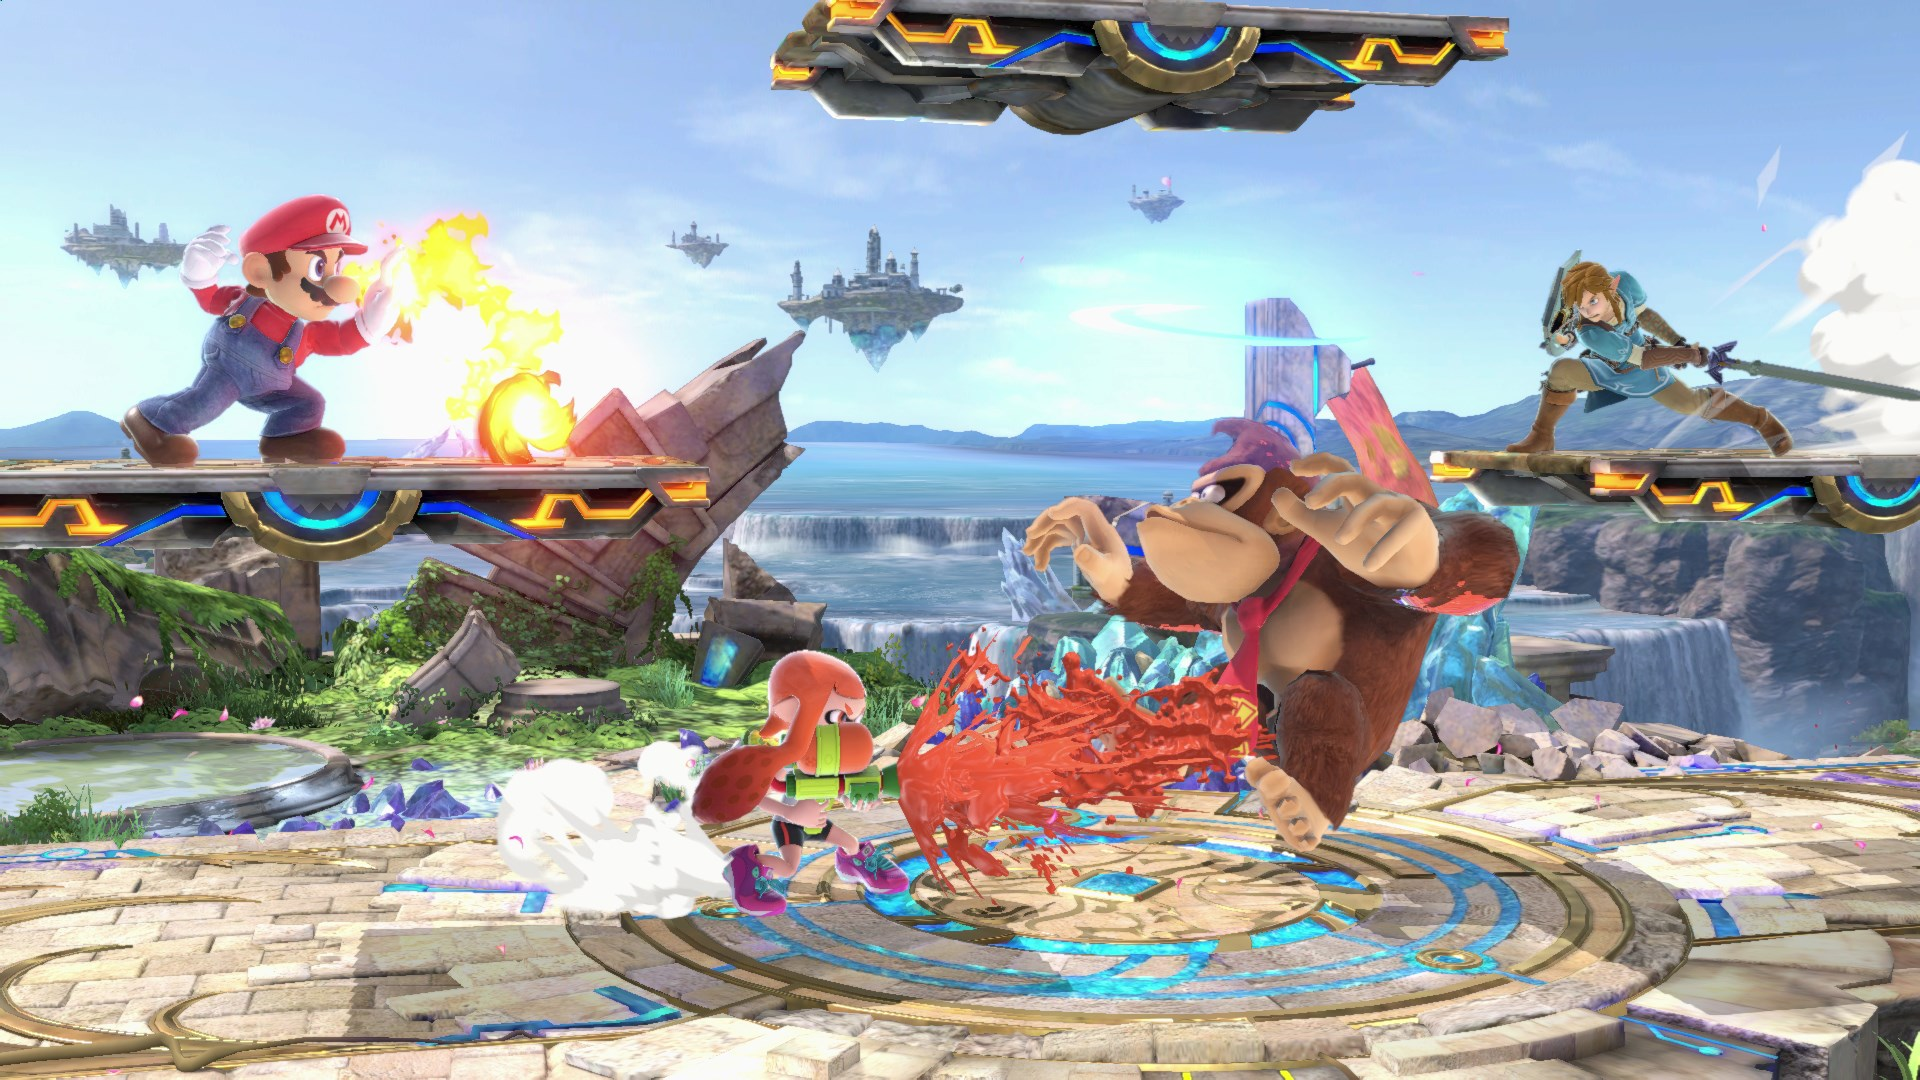 E3 Trailer: 'Super Smash Bros. Ultimate' for Nintendo Switch